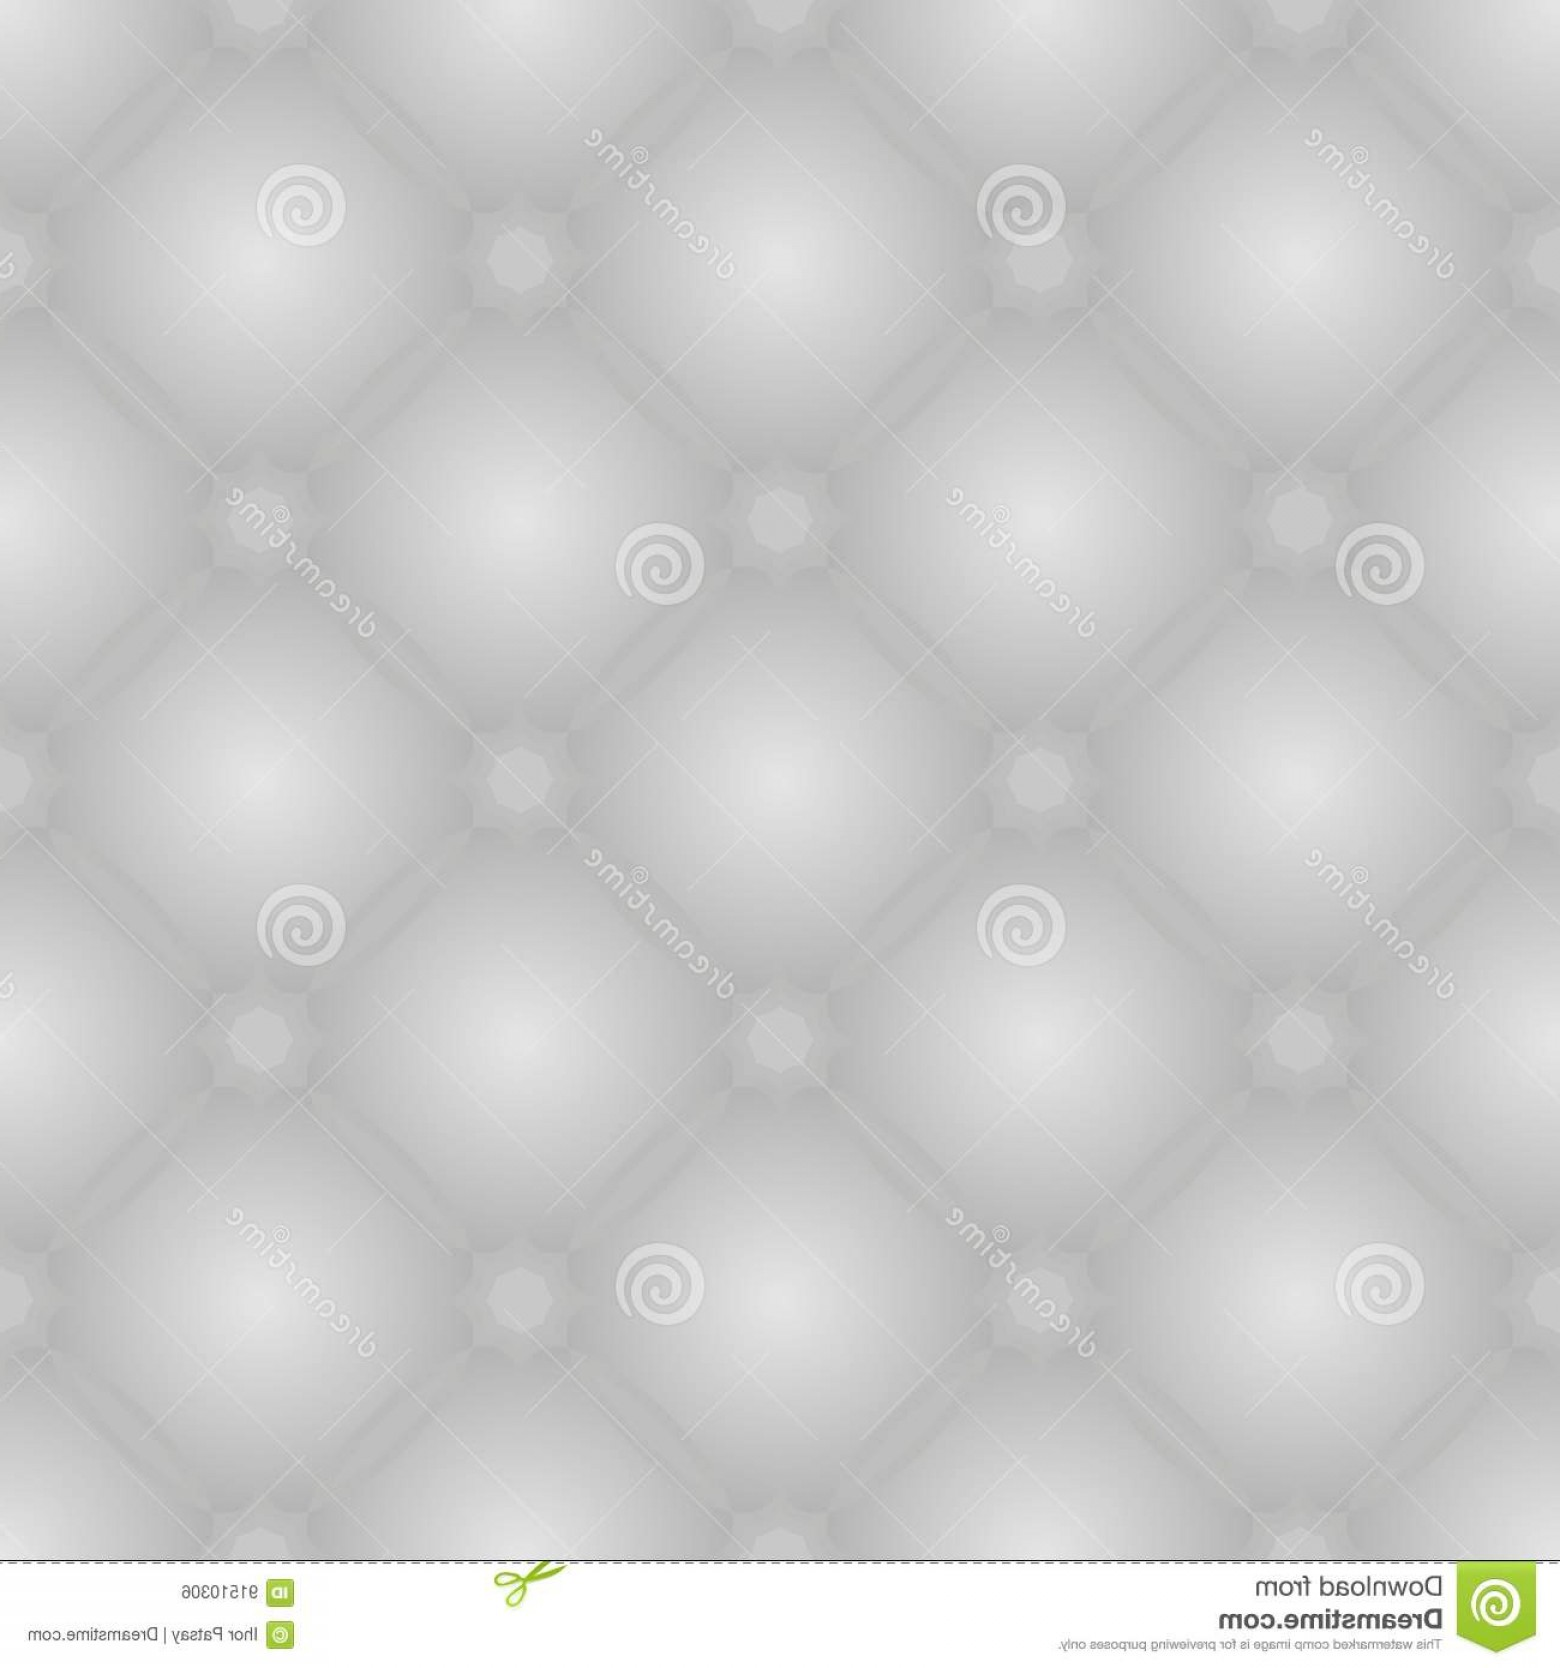 Vector Seamless Leather Pattern: Stock Illustration Seamless Leather Pattern Grey Tufted Texture Background Image